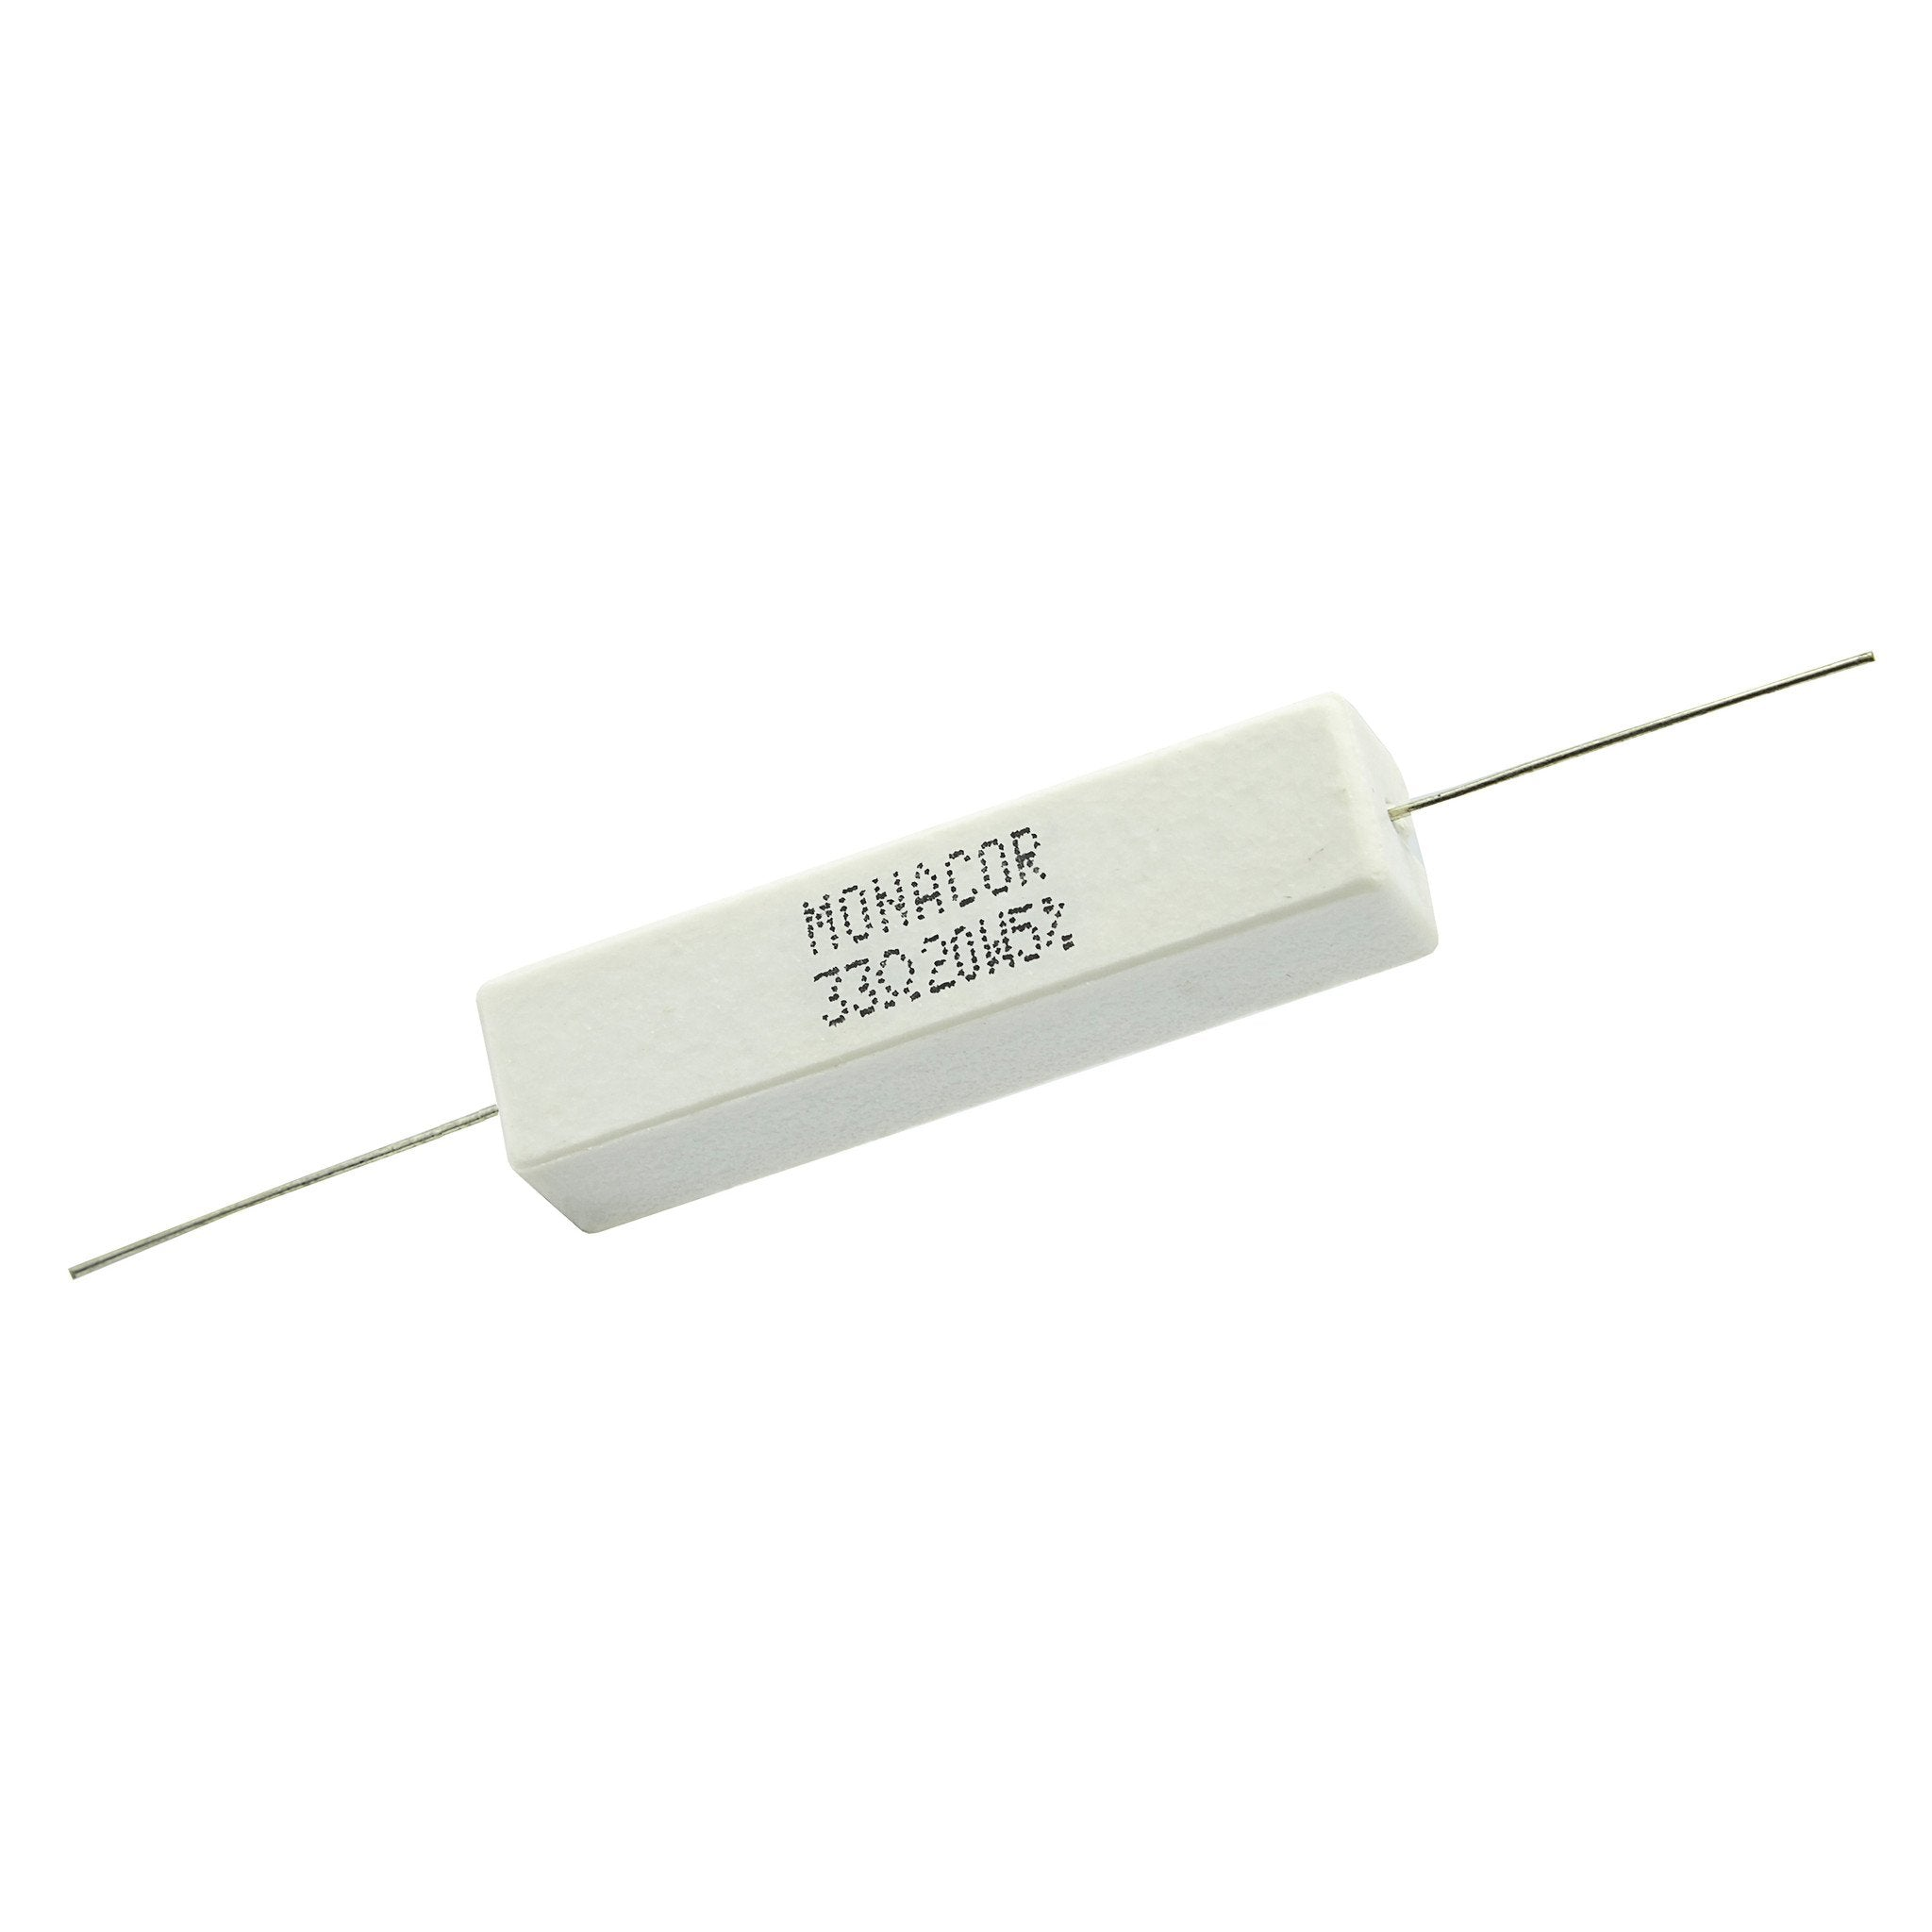 33 Ohm 20 Watt 5% Ceramic Wirewound Resistor - Willys-Hifi Ltd